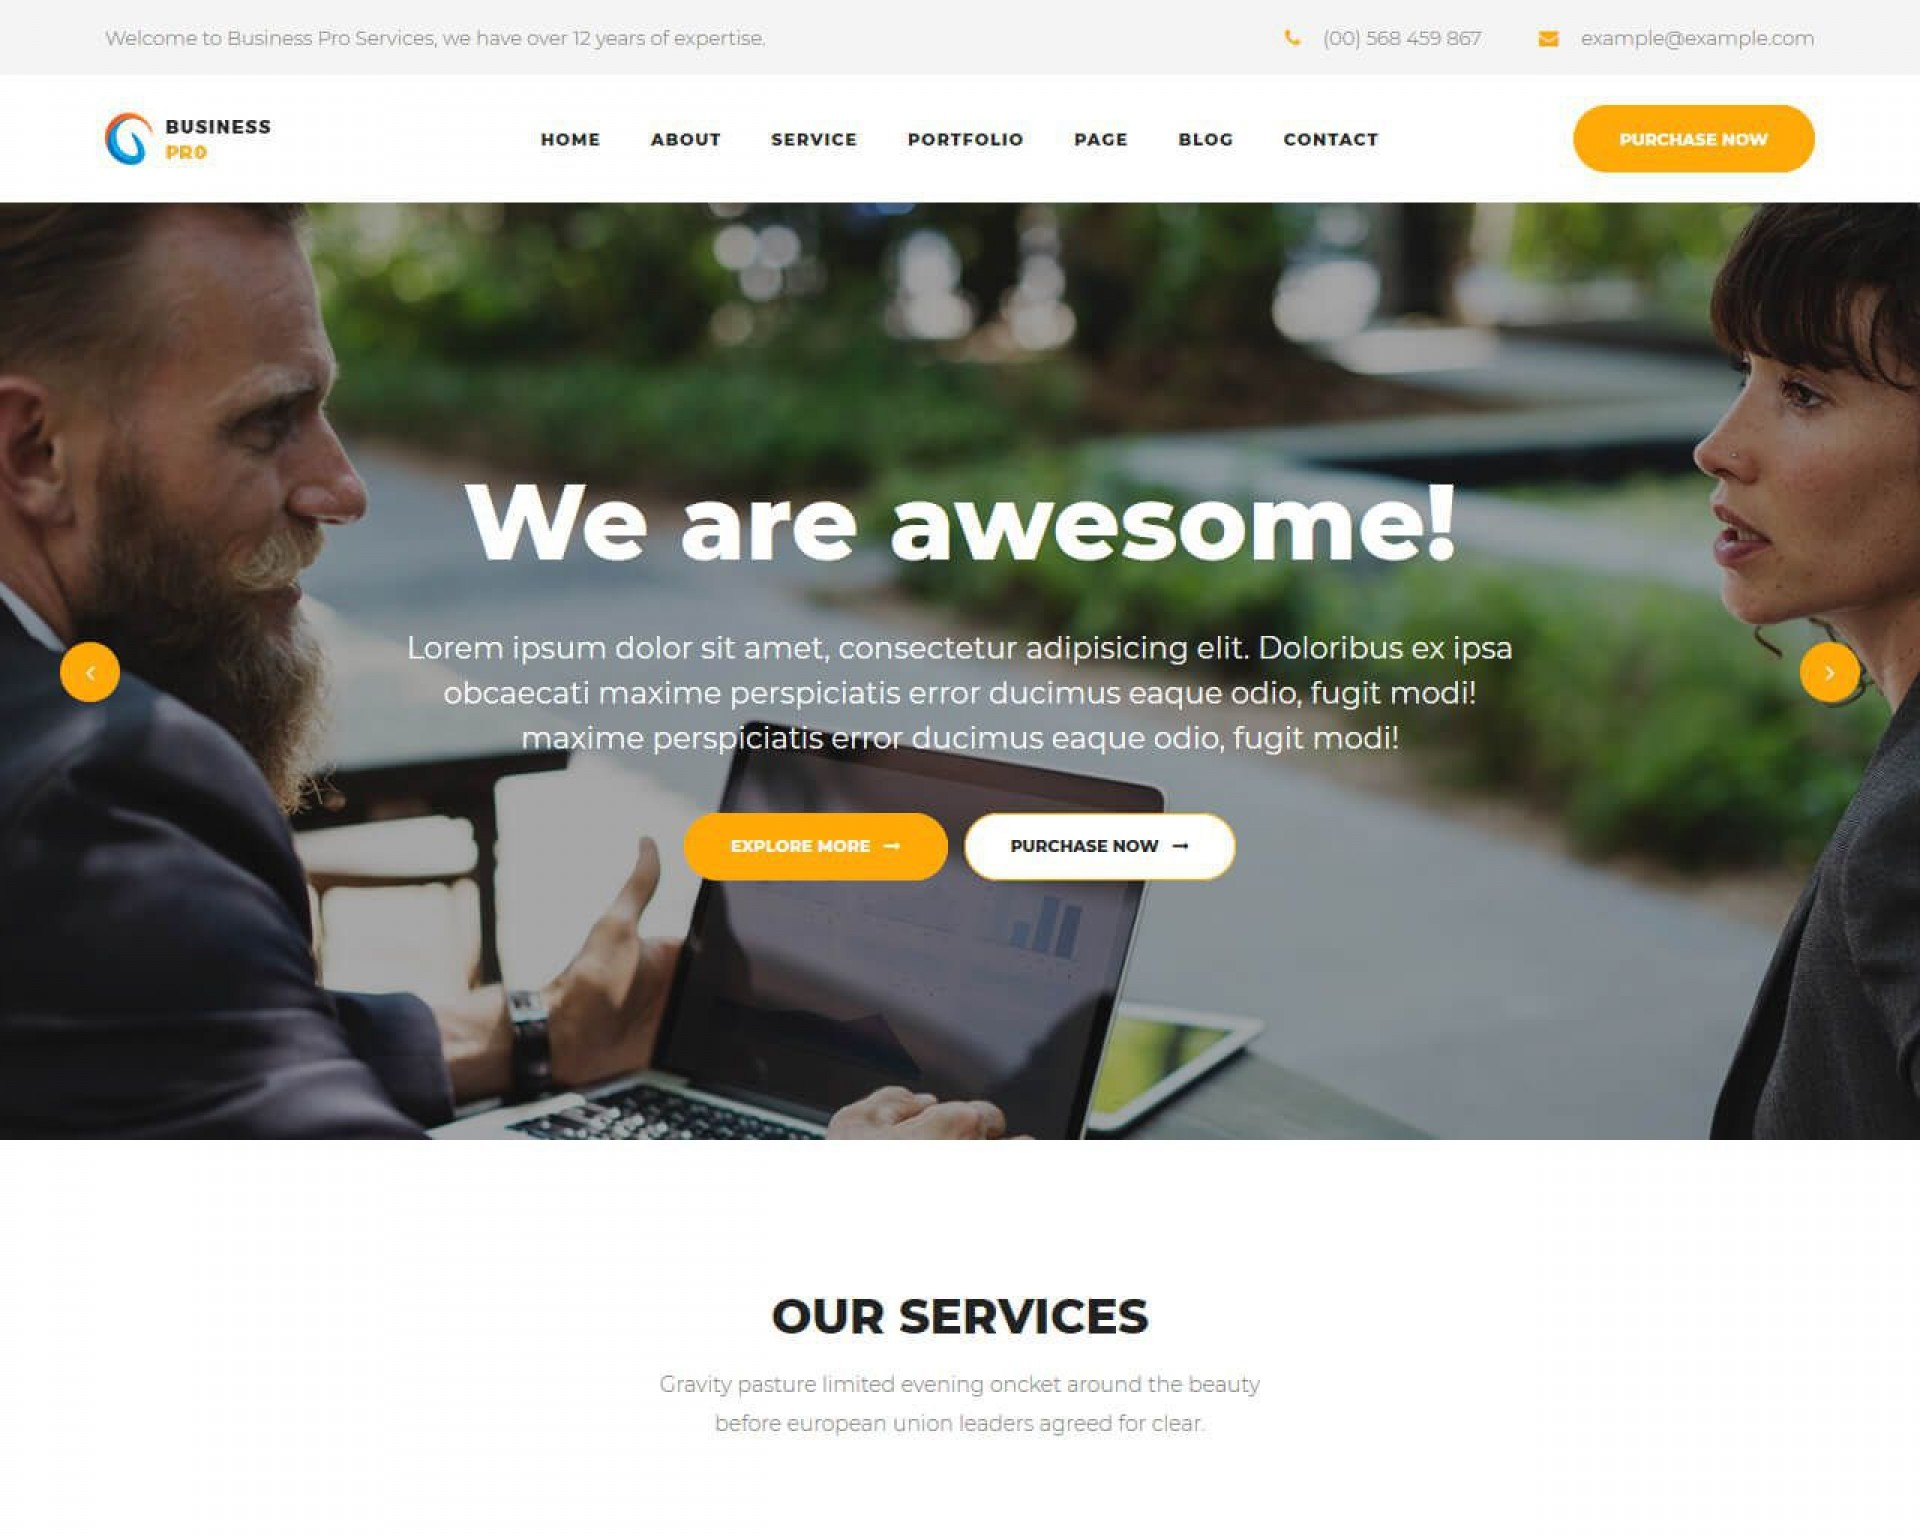 005 Unbelievable Free Busines Website Template Download Html And Cs Jquery High Definition  Responsive For It Company1920